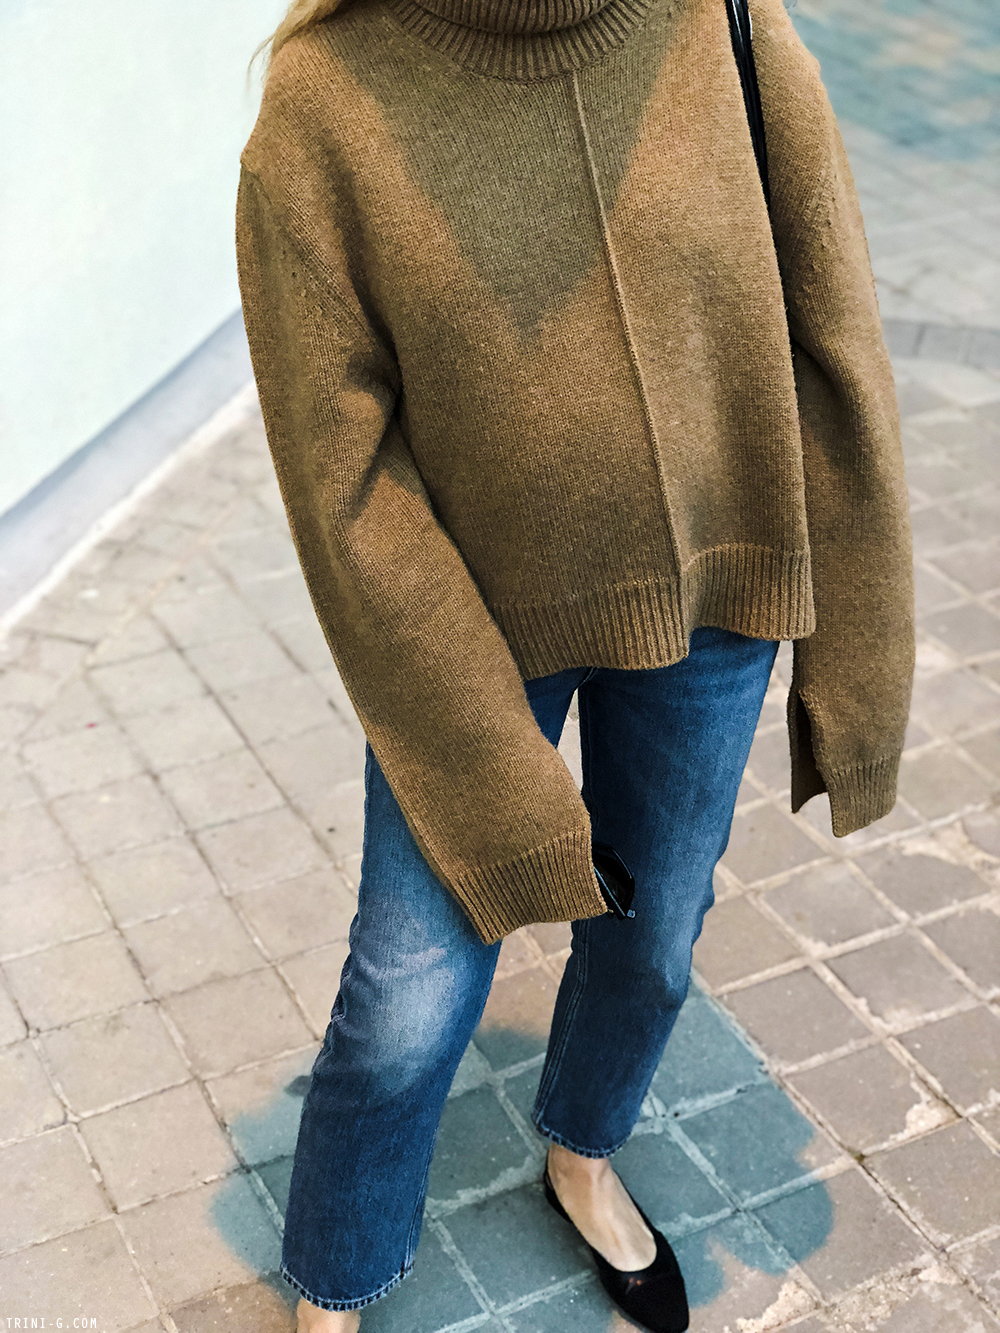 Trini | Céline turtleneck sweater Acne Studios jeans Chanel shoes